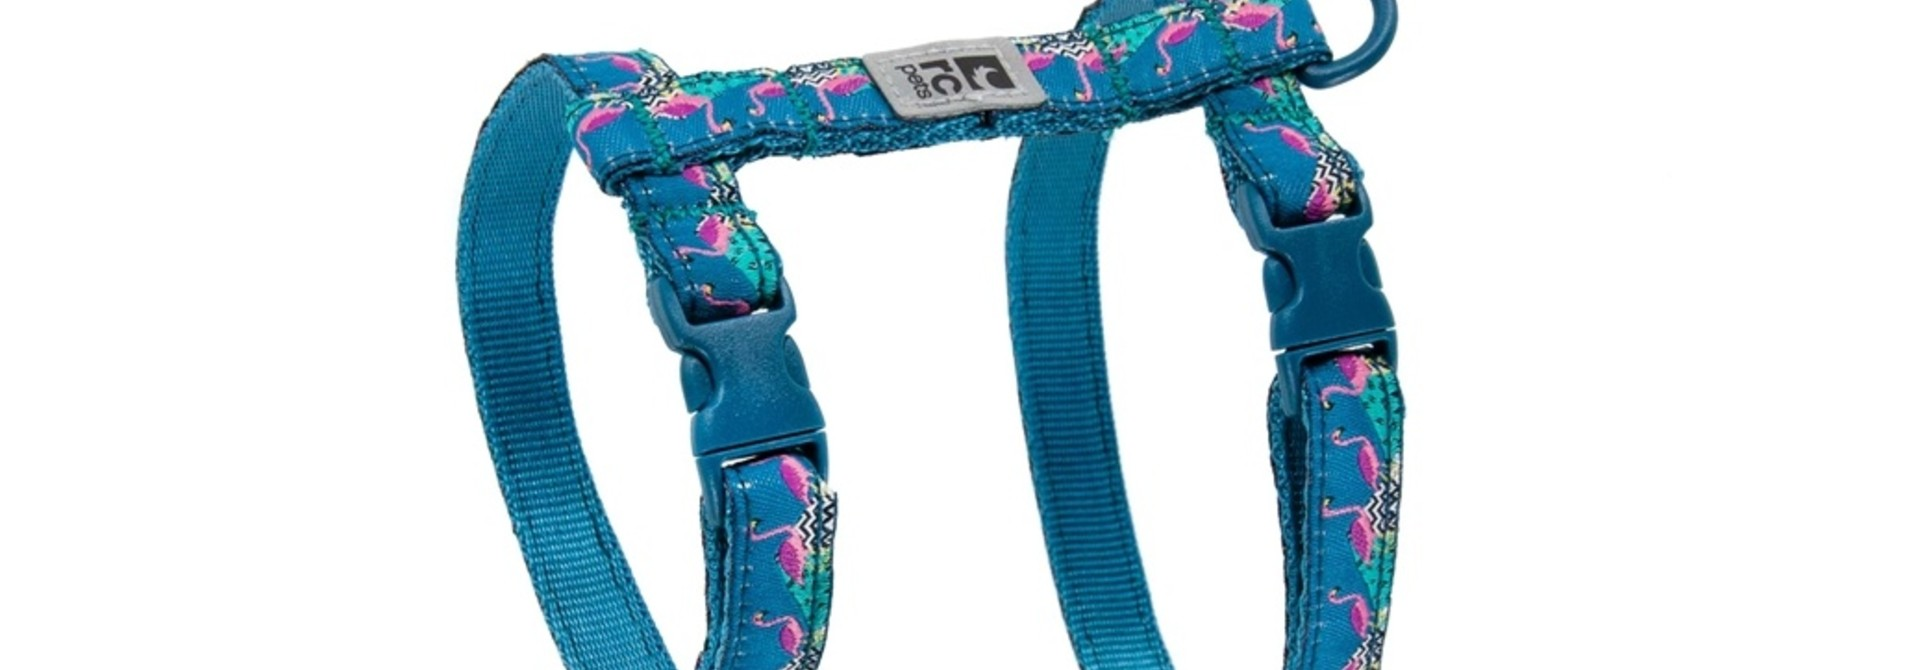 Kitty Harness 2.0 S Flamingo